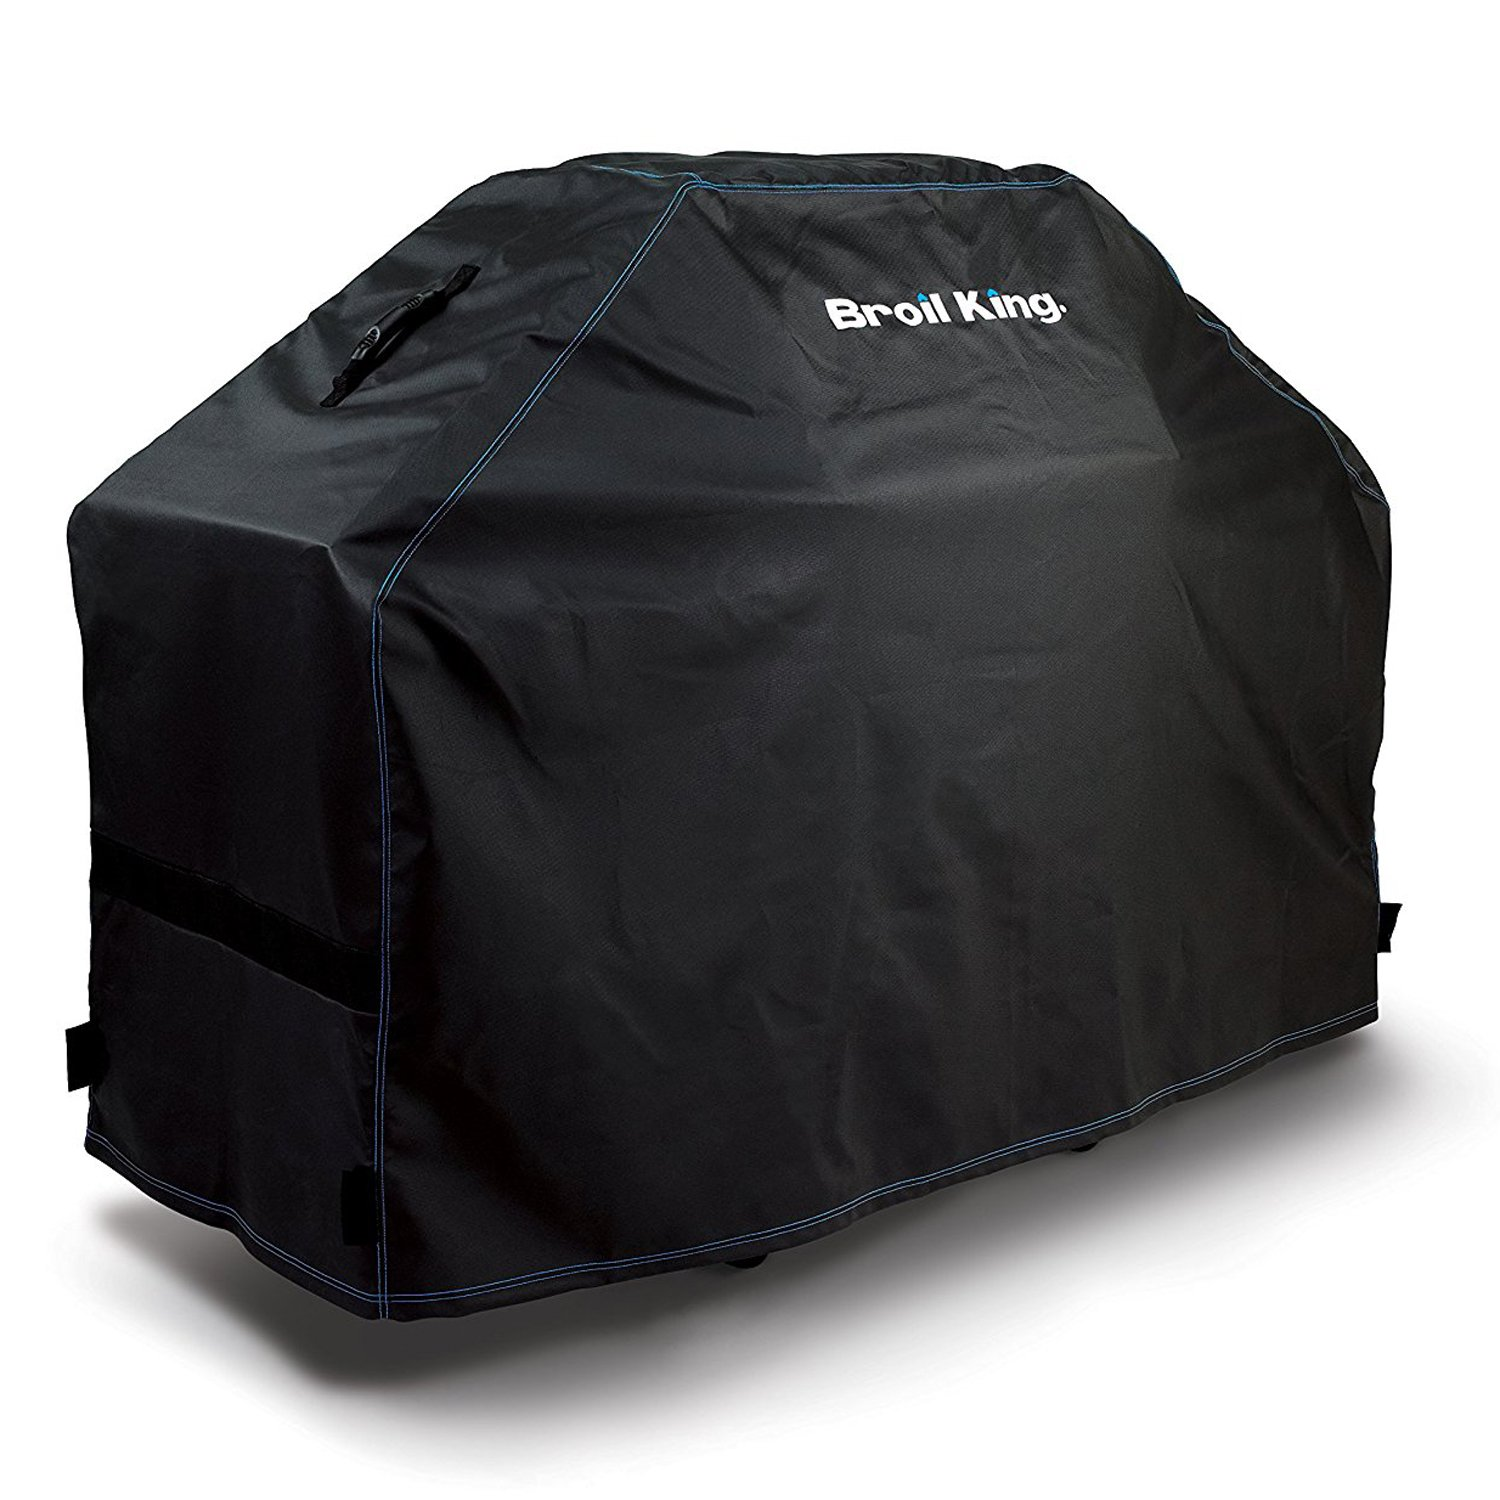 Broil King 76'' Premium Exact Fit Cover for Regal XL, Imperial XL BBQ Grills